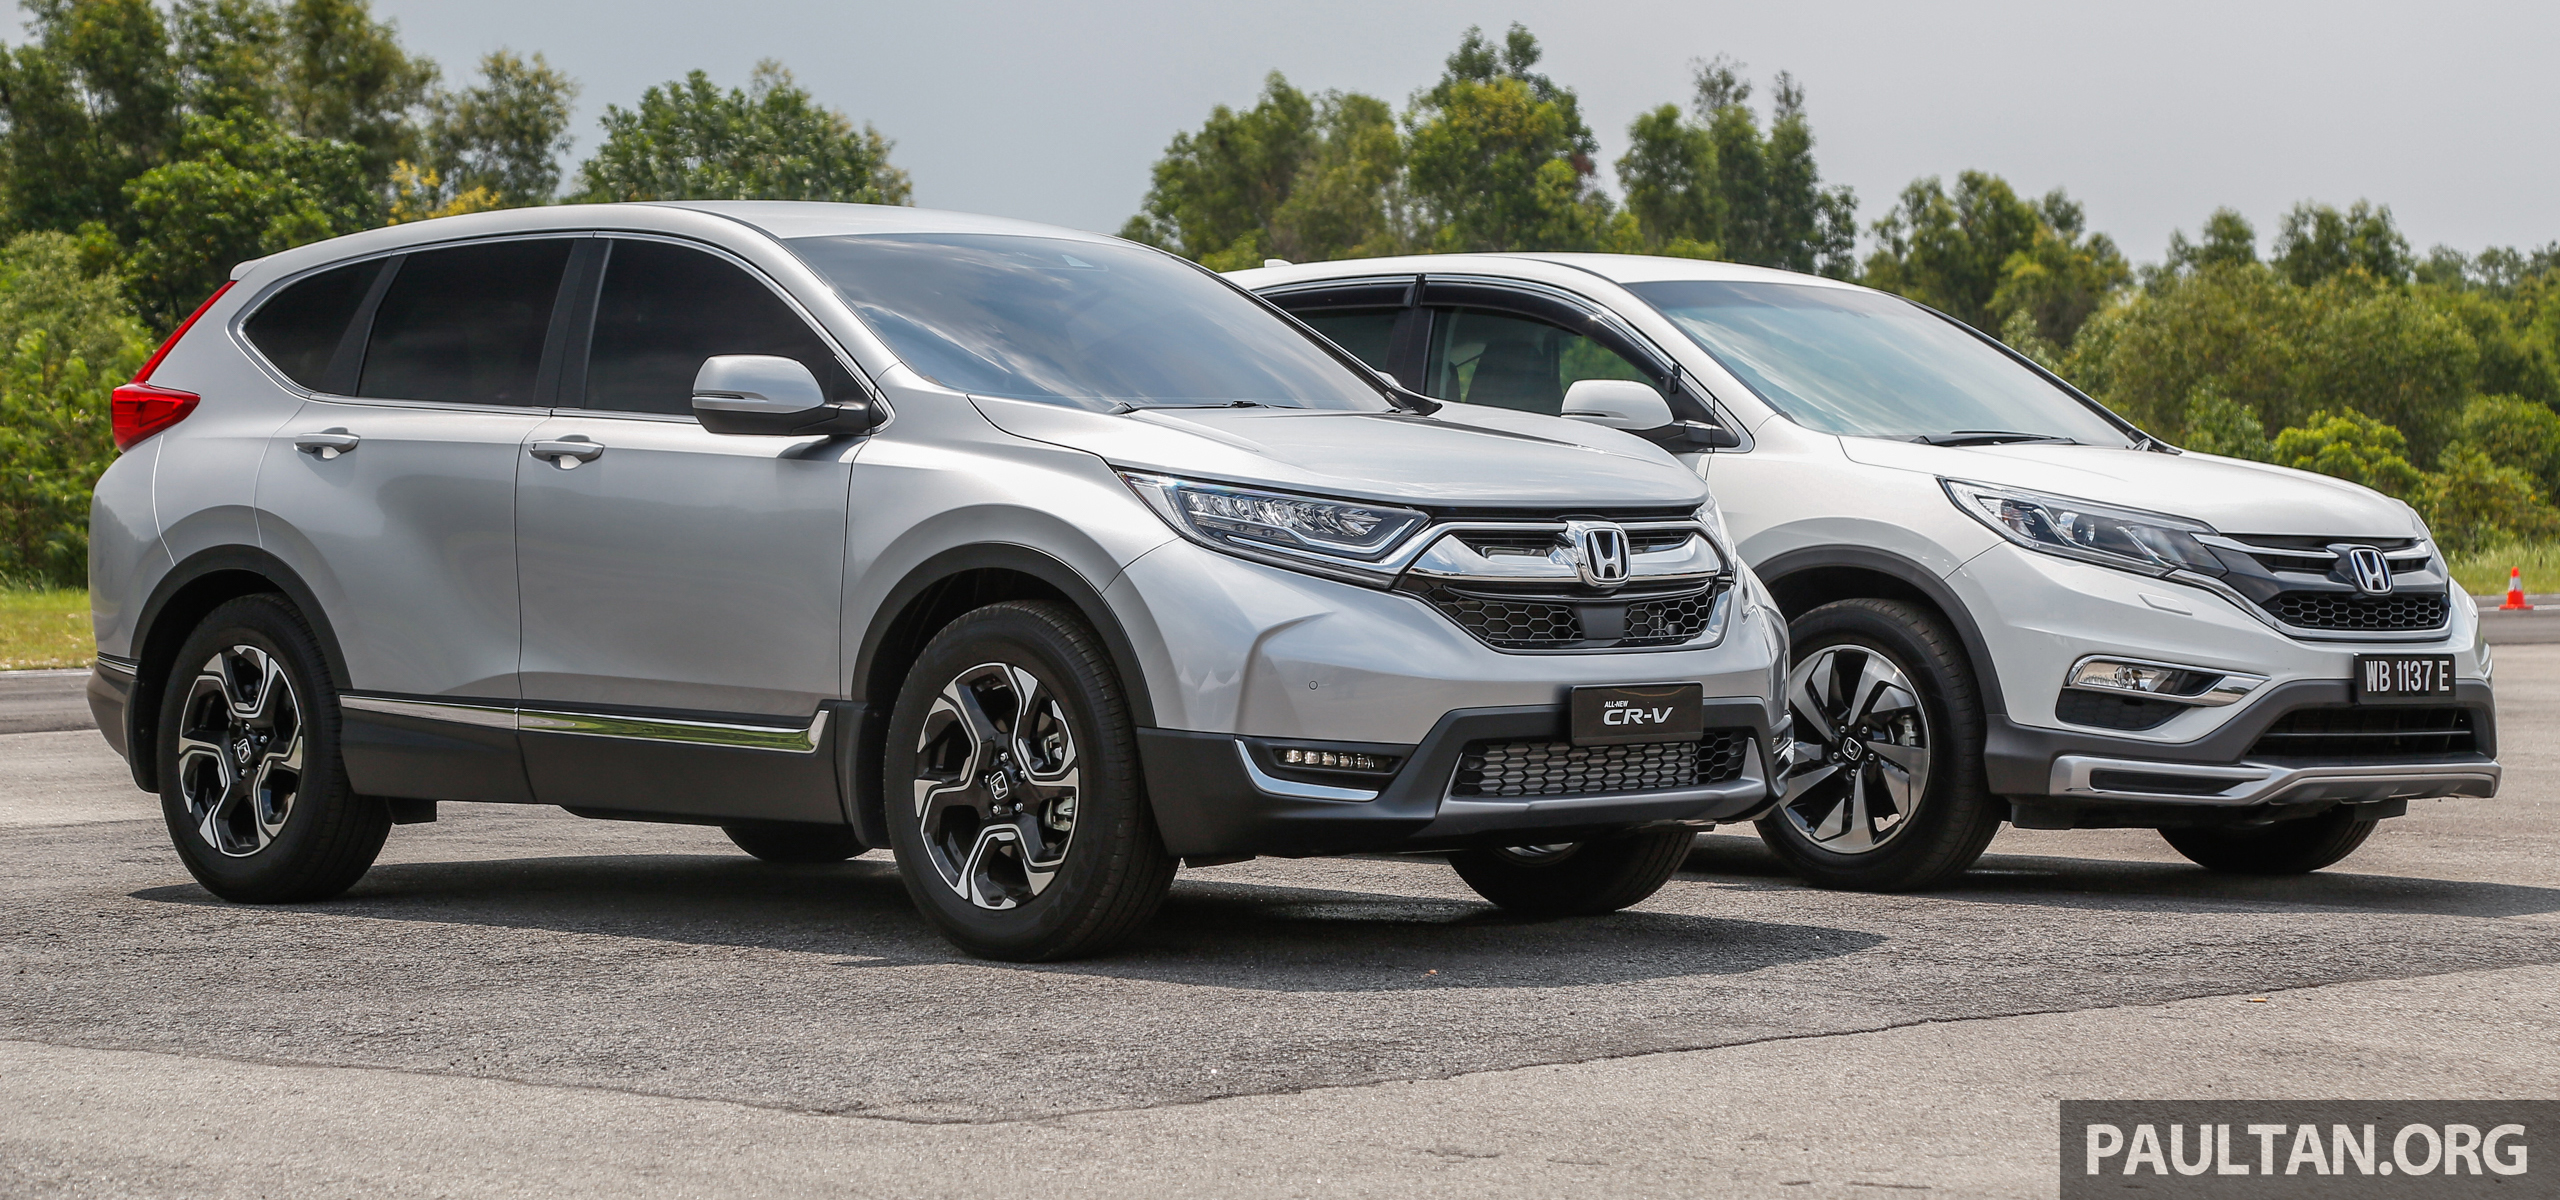 With Bookings For The 2017 Honda Cr V Now Open Malaysia Recently Invited Members Of Media To Sample Fifth Generation Suv Alongside